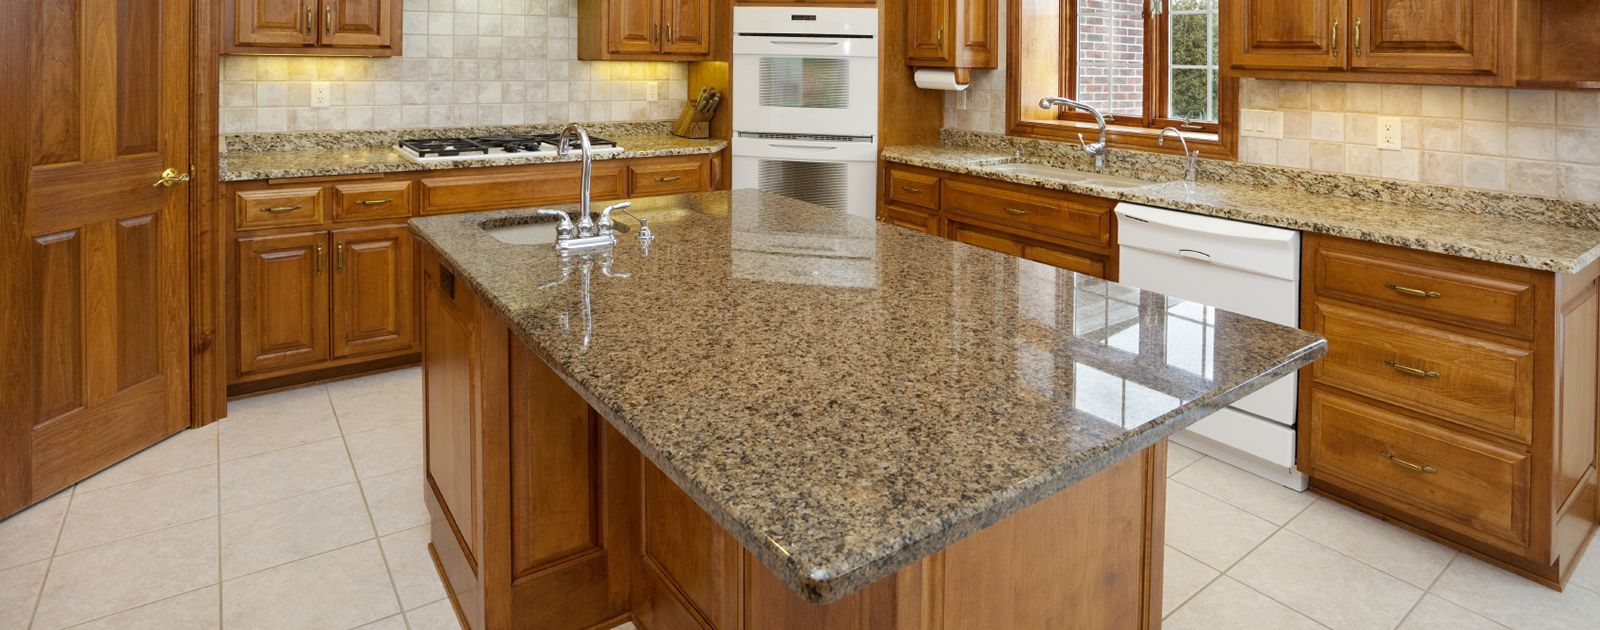 Twin Cities Top Rated Granite Countertop Installation Nature S Stone Description From Naturesstonedirectmn